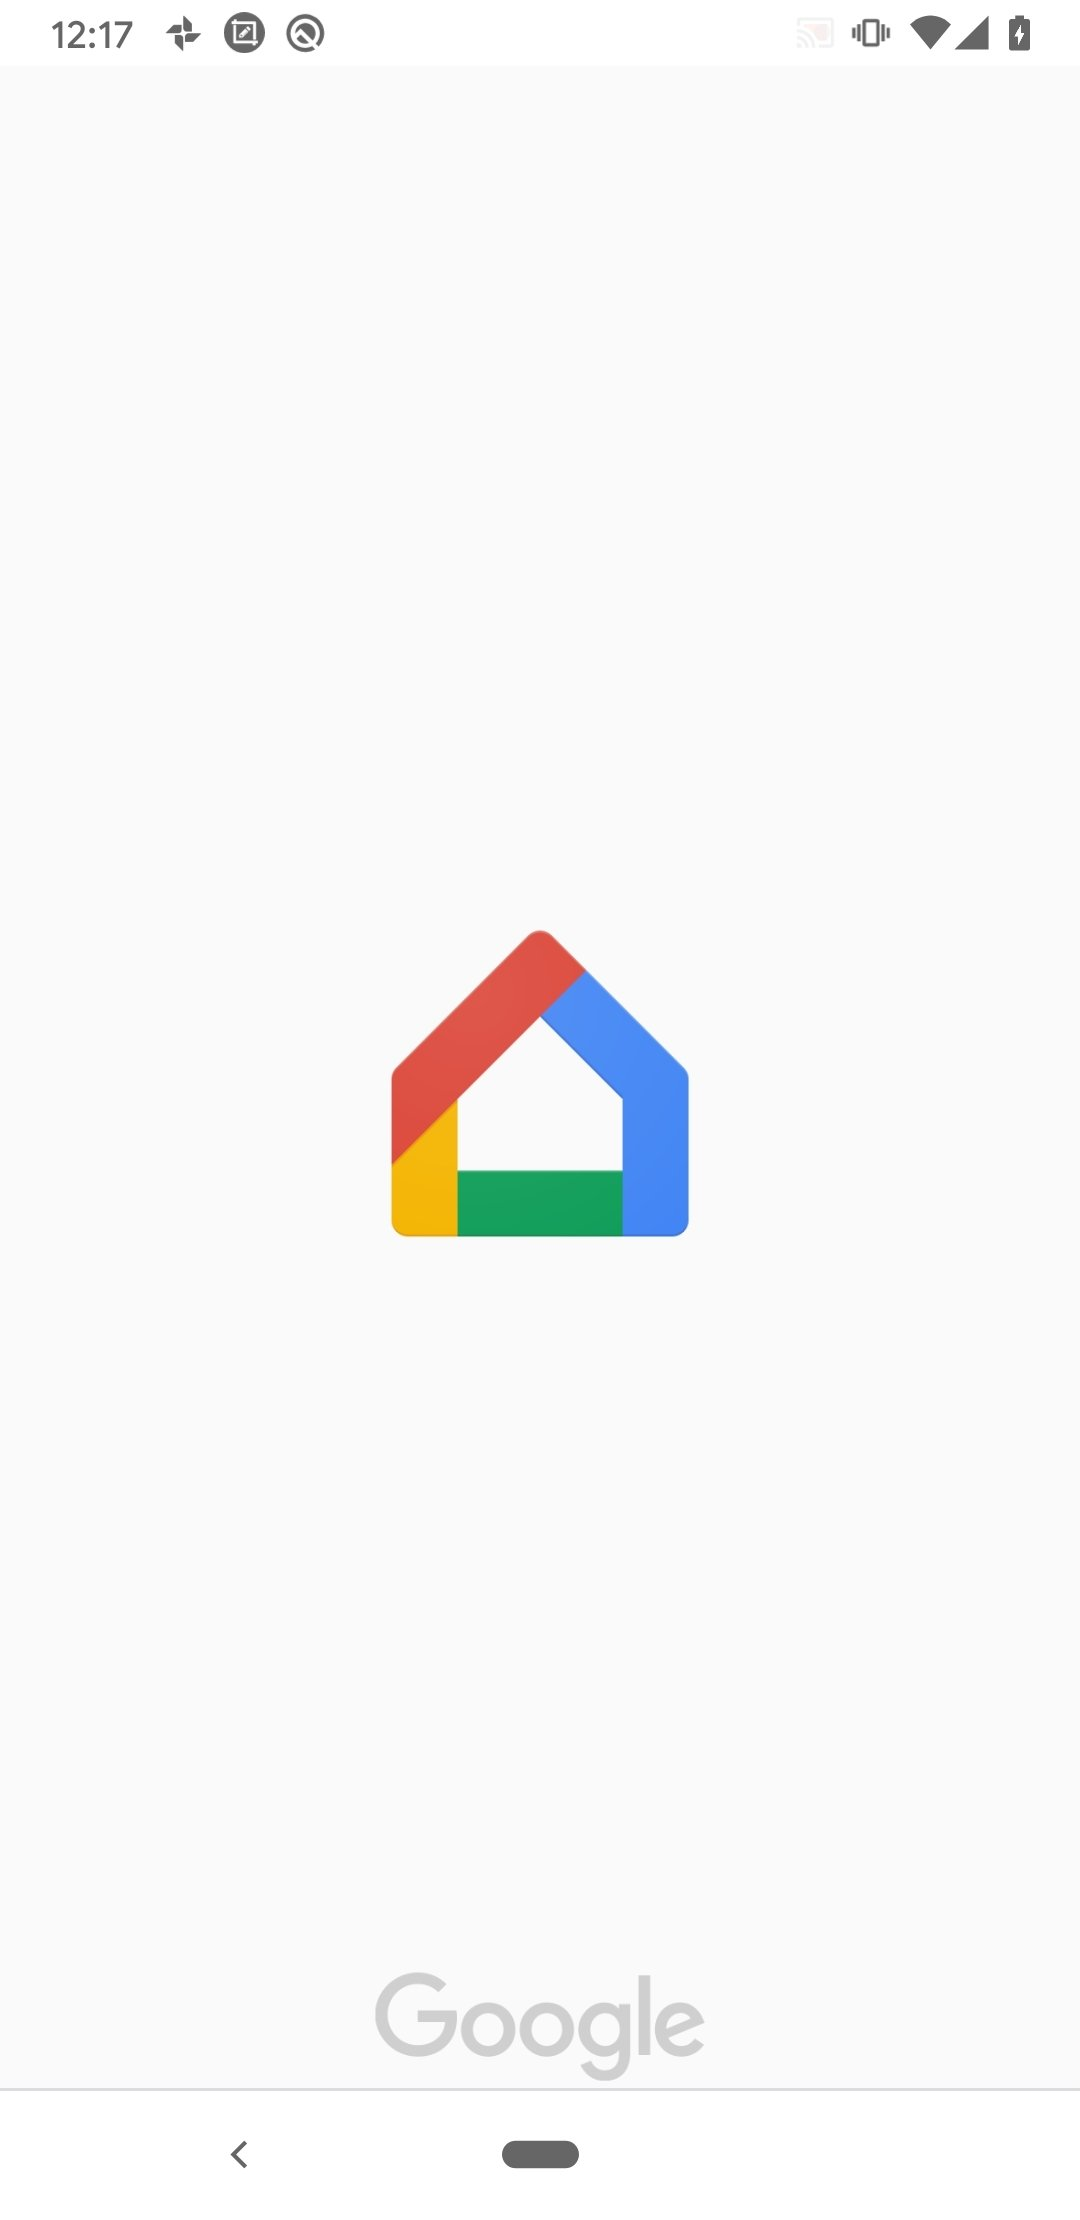 Google Home 2 13 1 10 - Download for Android APK Free